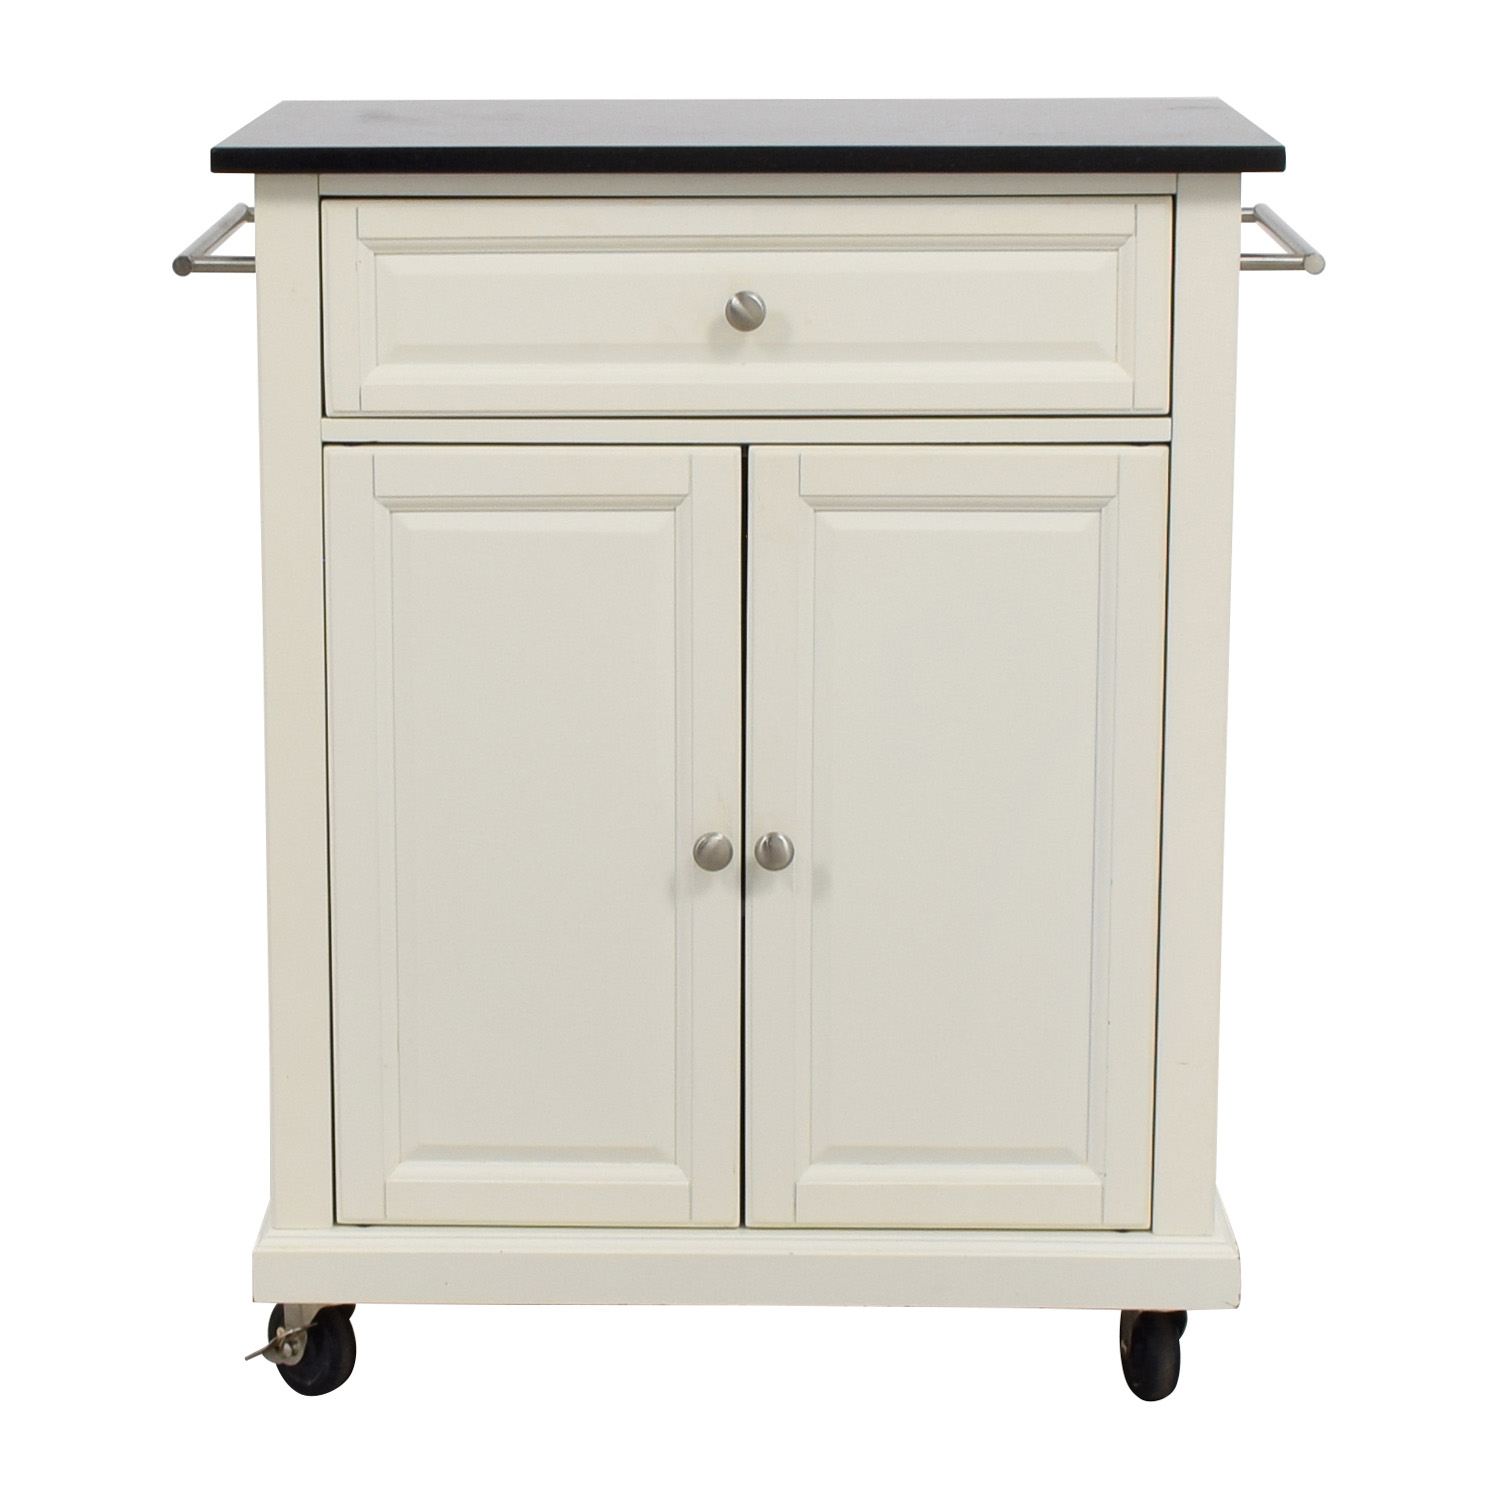 Crosley Furniture Crosley Furniture White Kitchen Island Counter on Castors